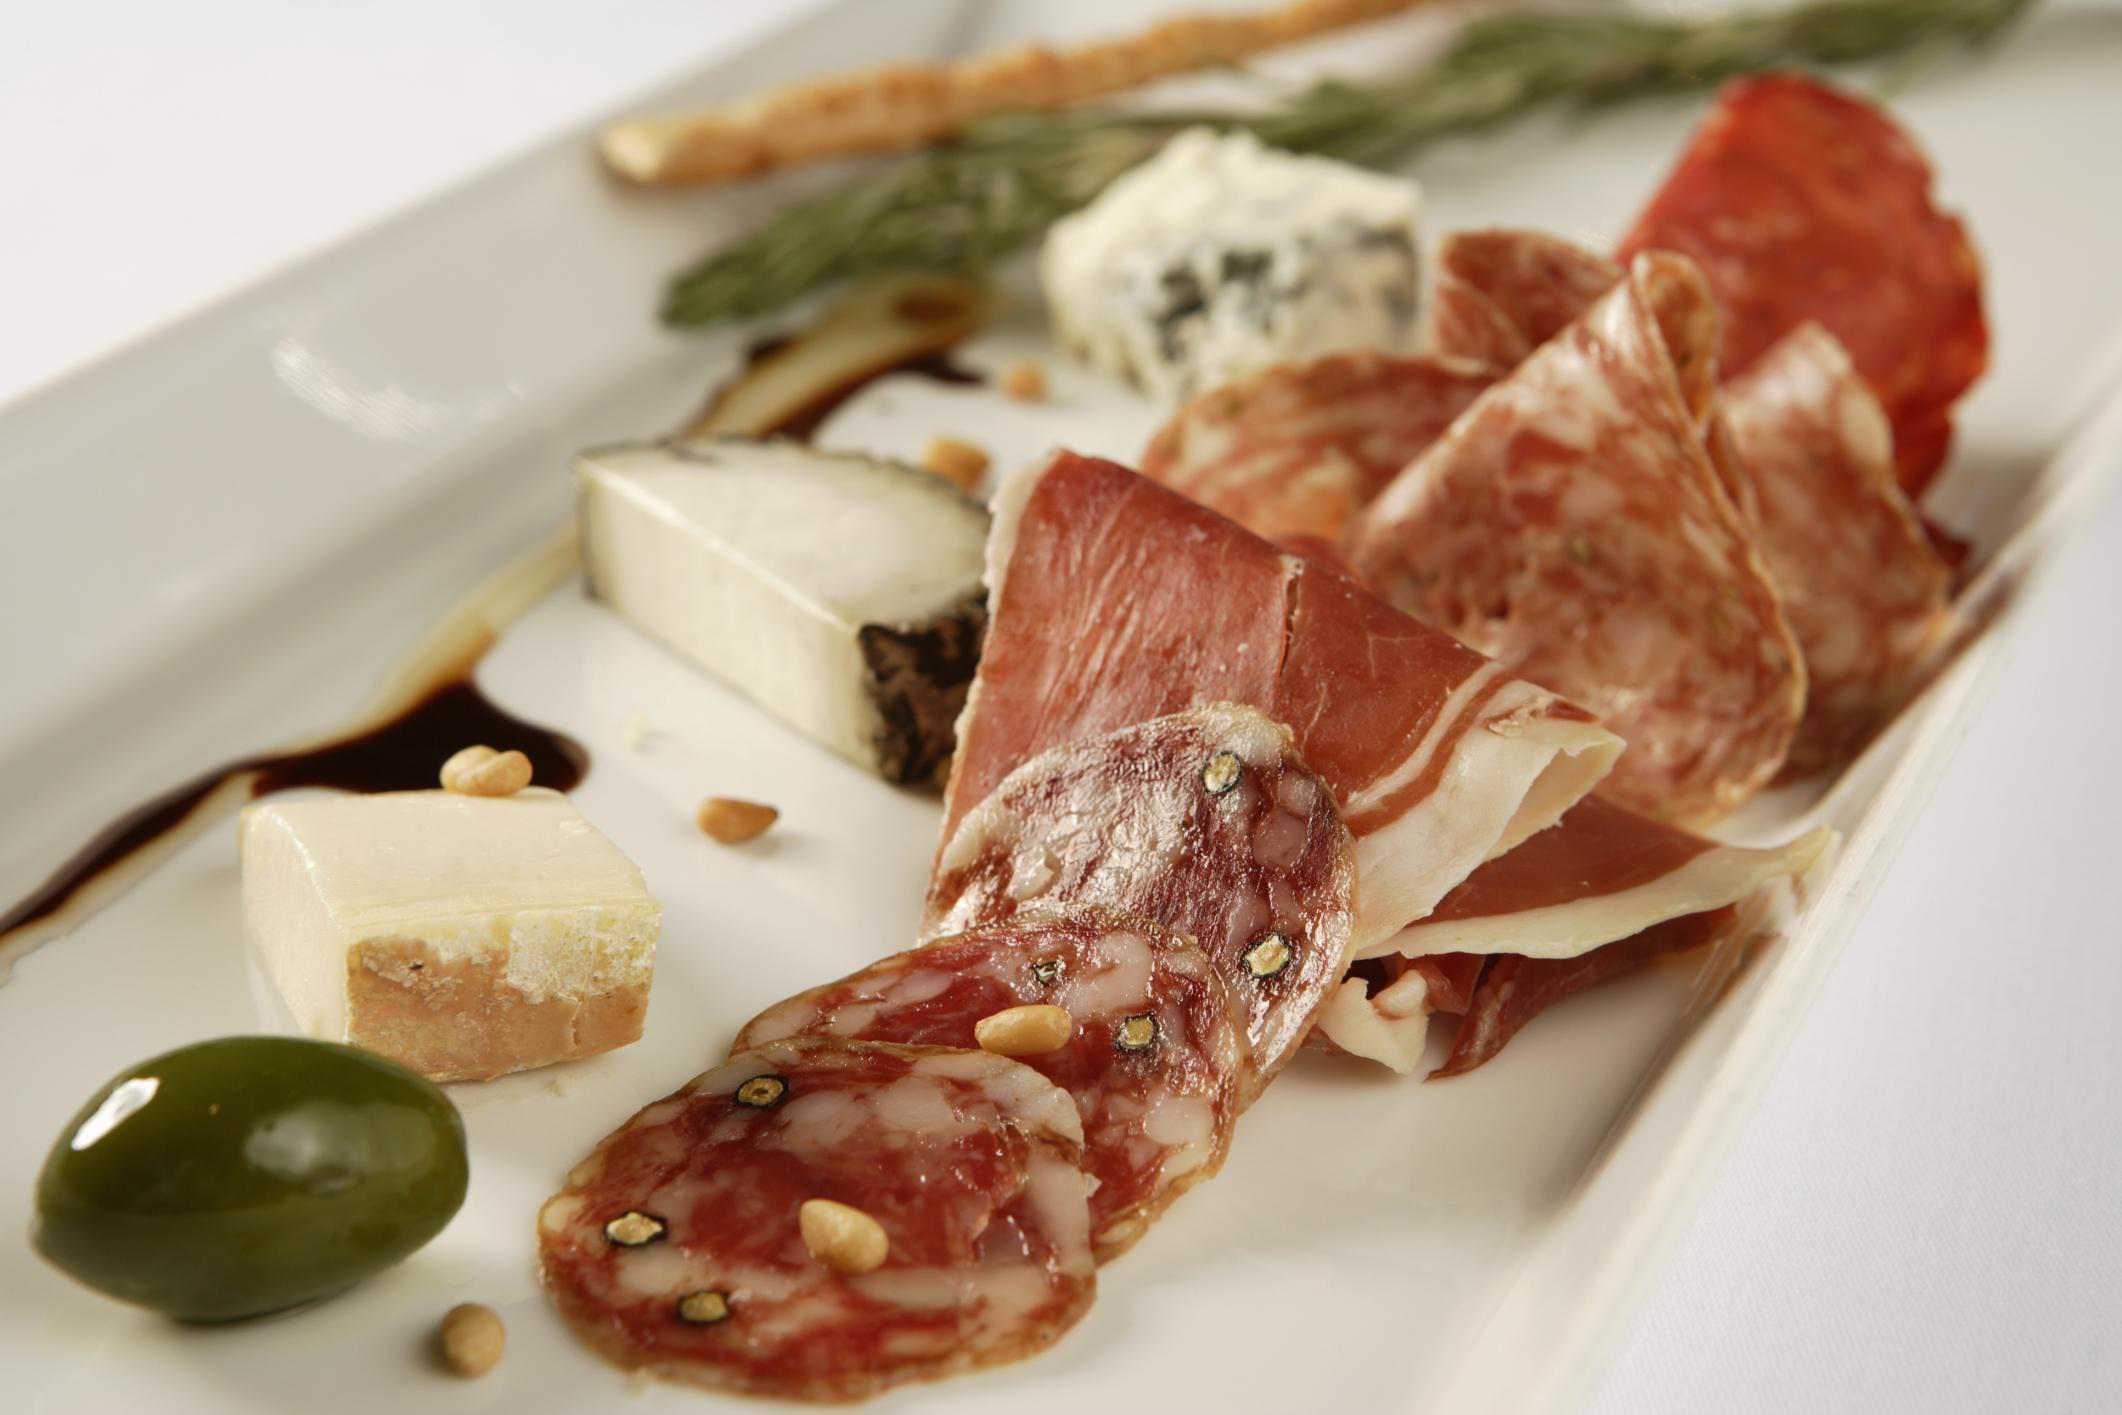 Cold cuts with cheese and olives